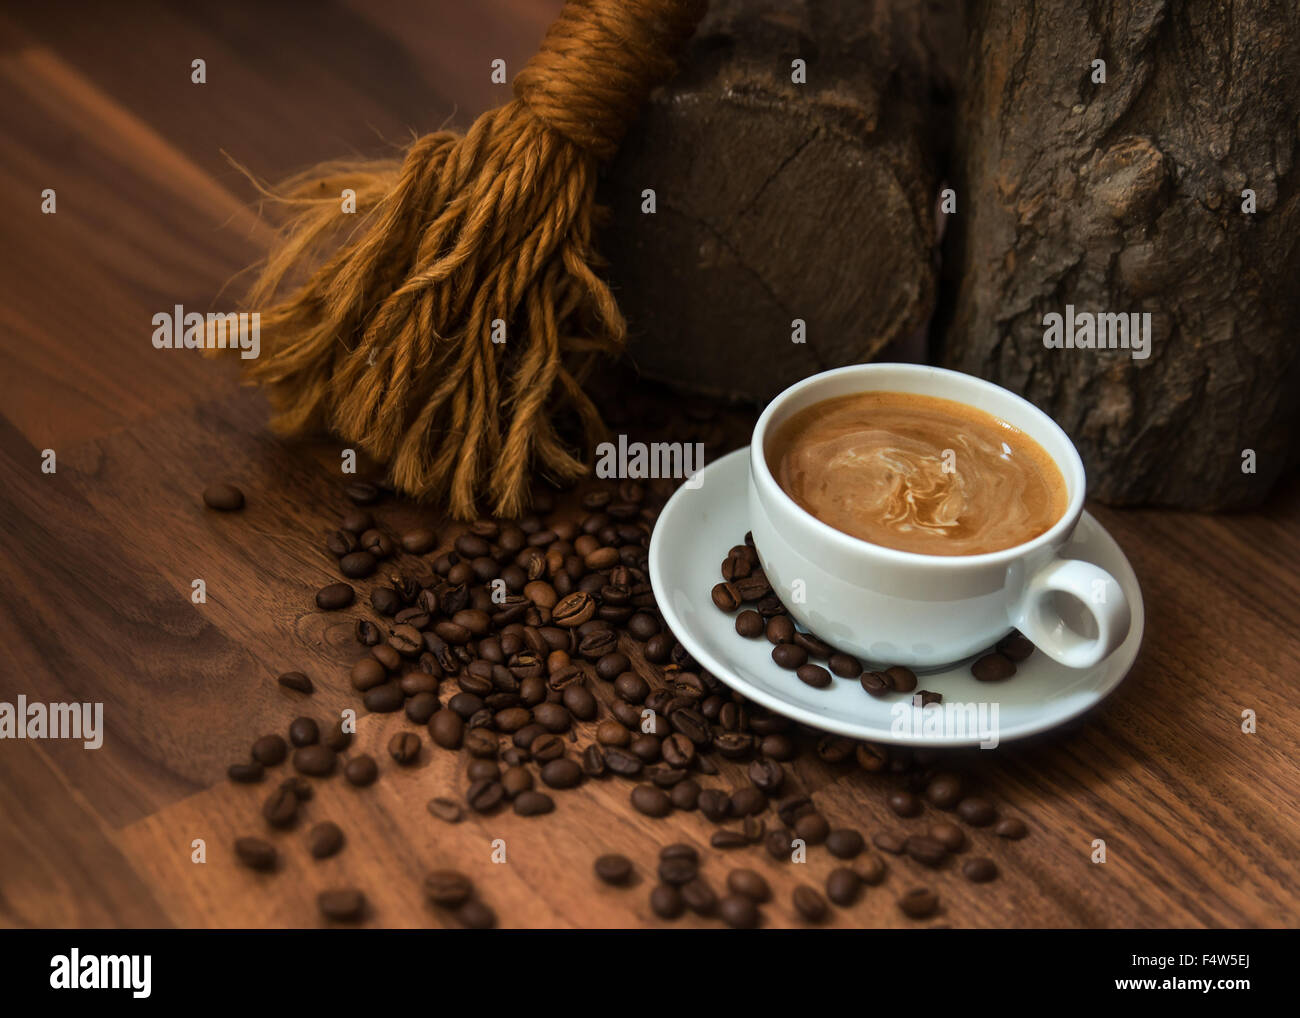 Cup of coffee with beans in earthy setting - Stock Image